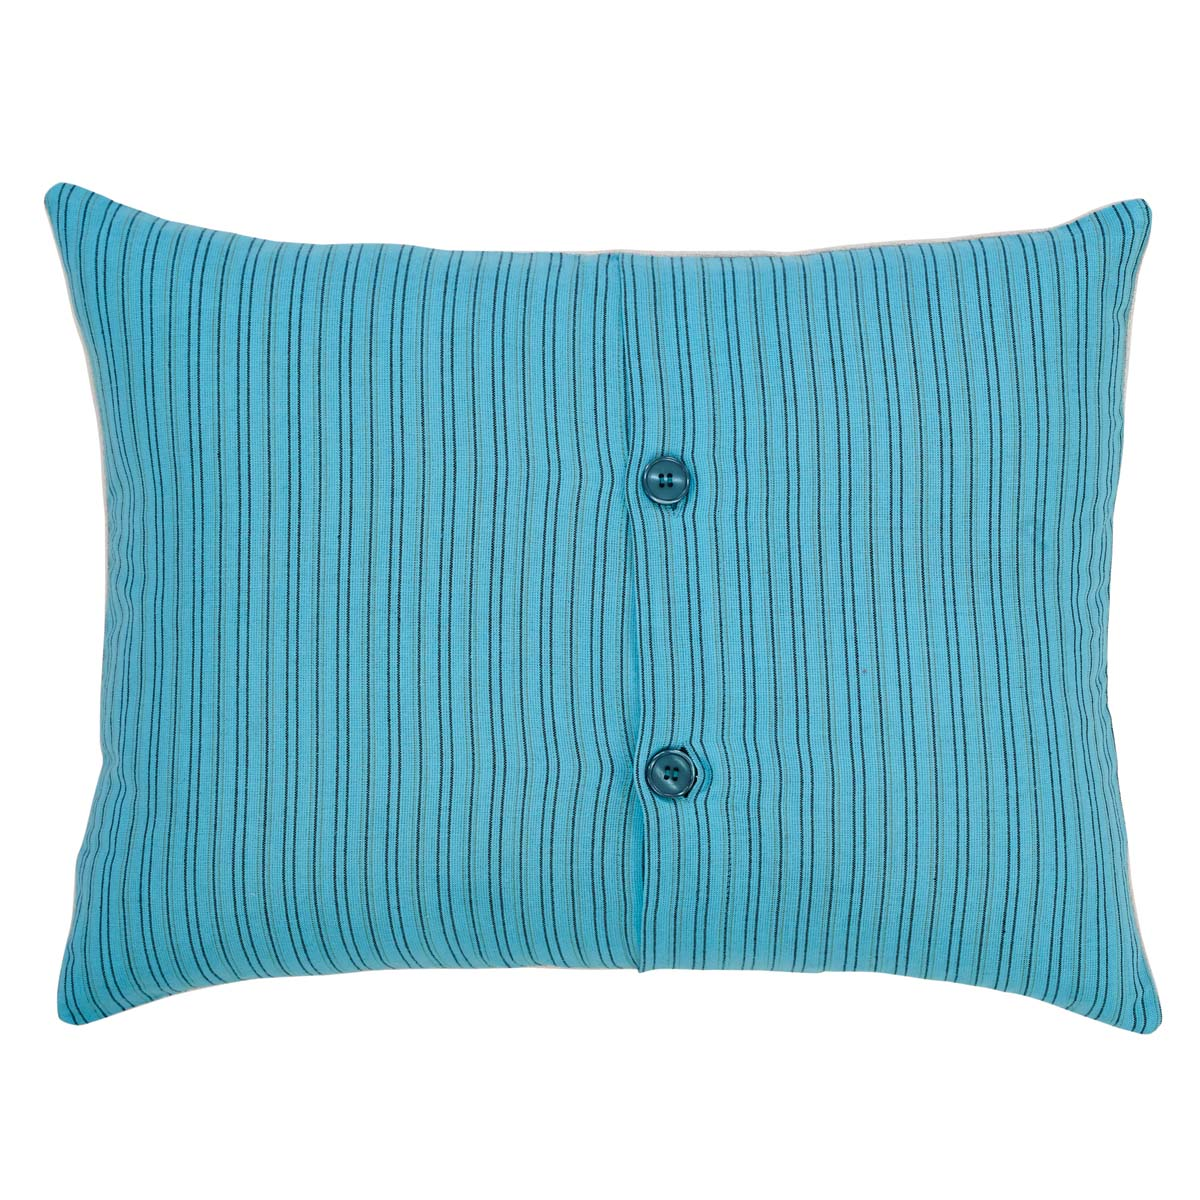 Nerine Mermaid Pillow 14x18 - Woodrol